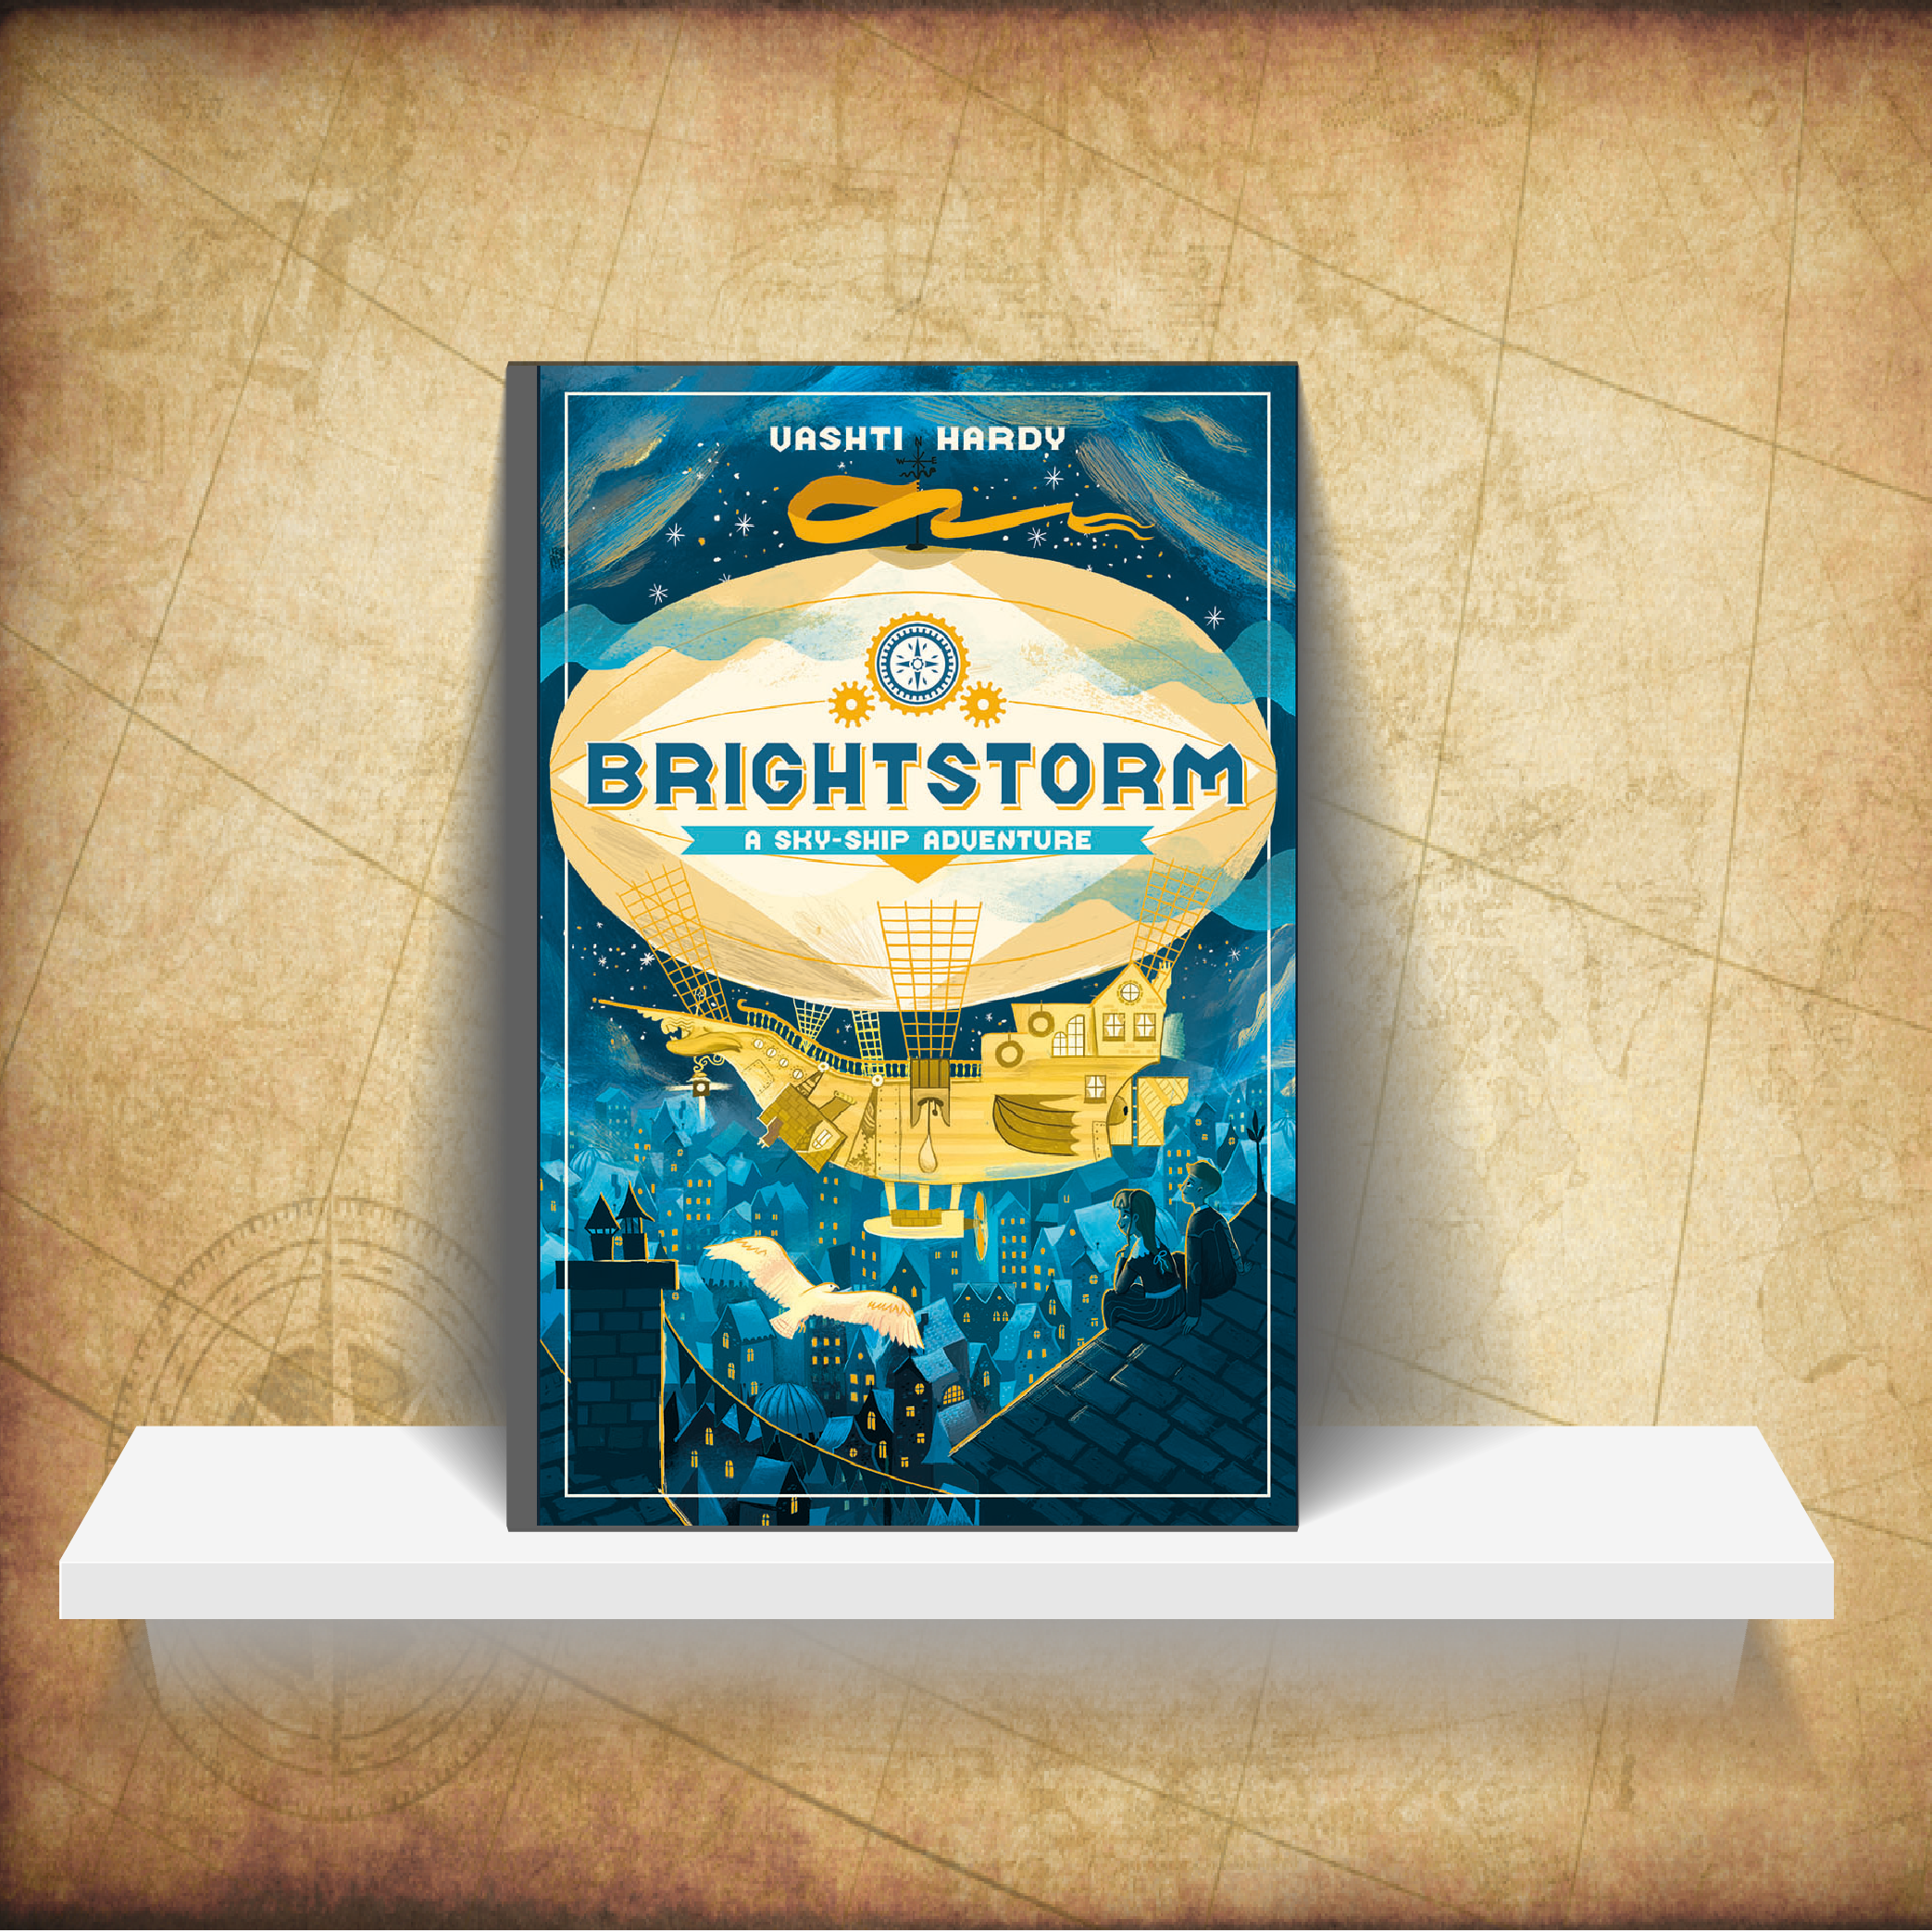 Brightstorm - Twins Arthur and Maudie Brightstorm receive word in Lontown that their famous explorer father has died in a failed attempt to reach the southernmost point in the world. Not only that, but he has been accused of stealing fuel before he died! The twins don't believe the news, and they answer an ad to join a new attempt to reach South Polaris. It's their only hope of learning the truth ... and salvaging their family's reputation.